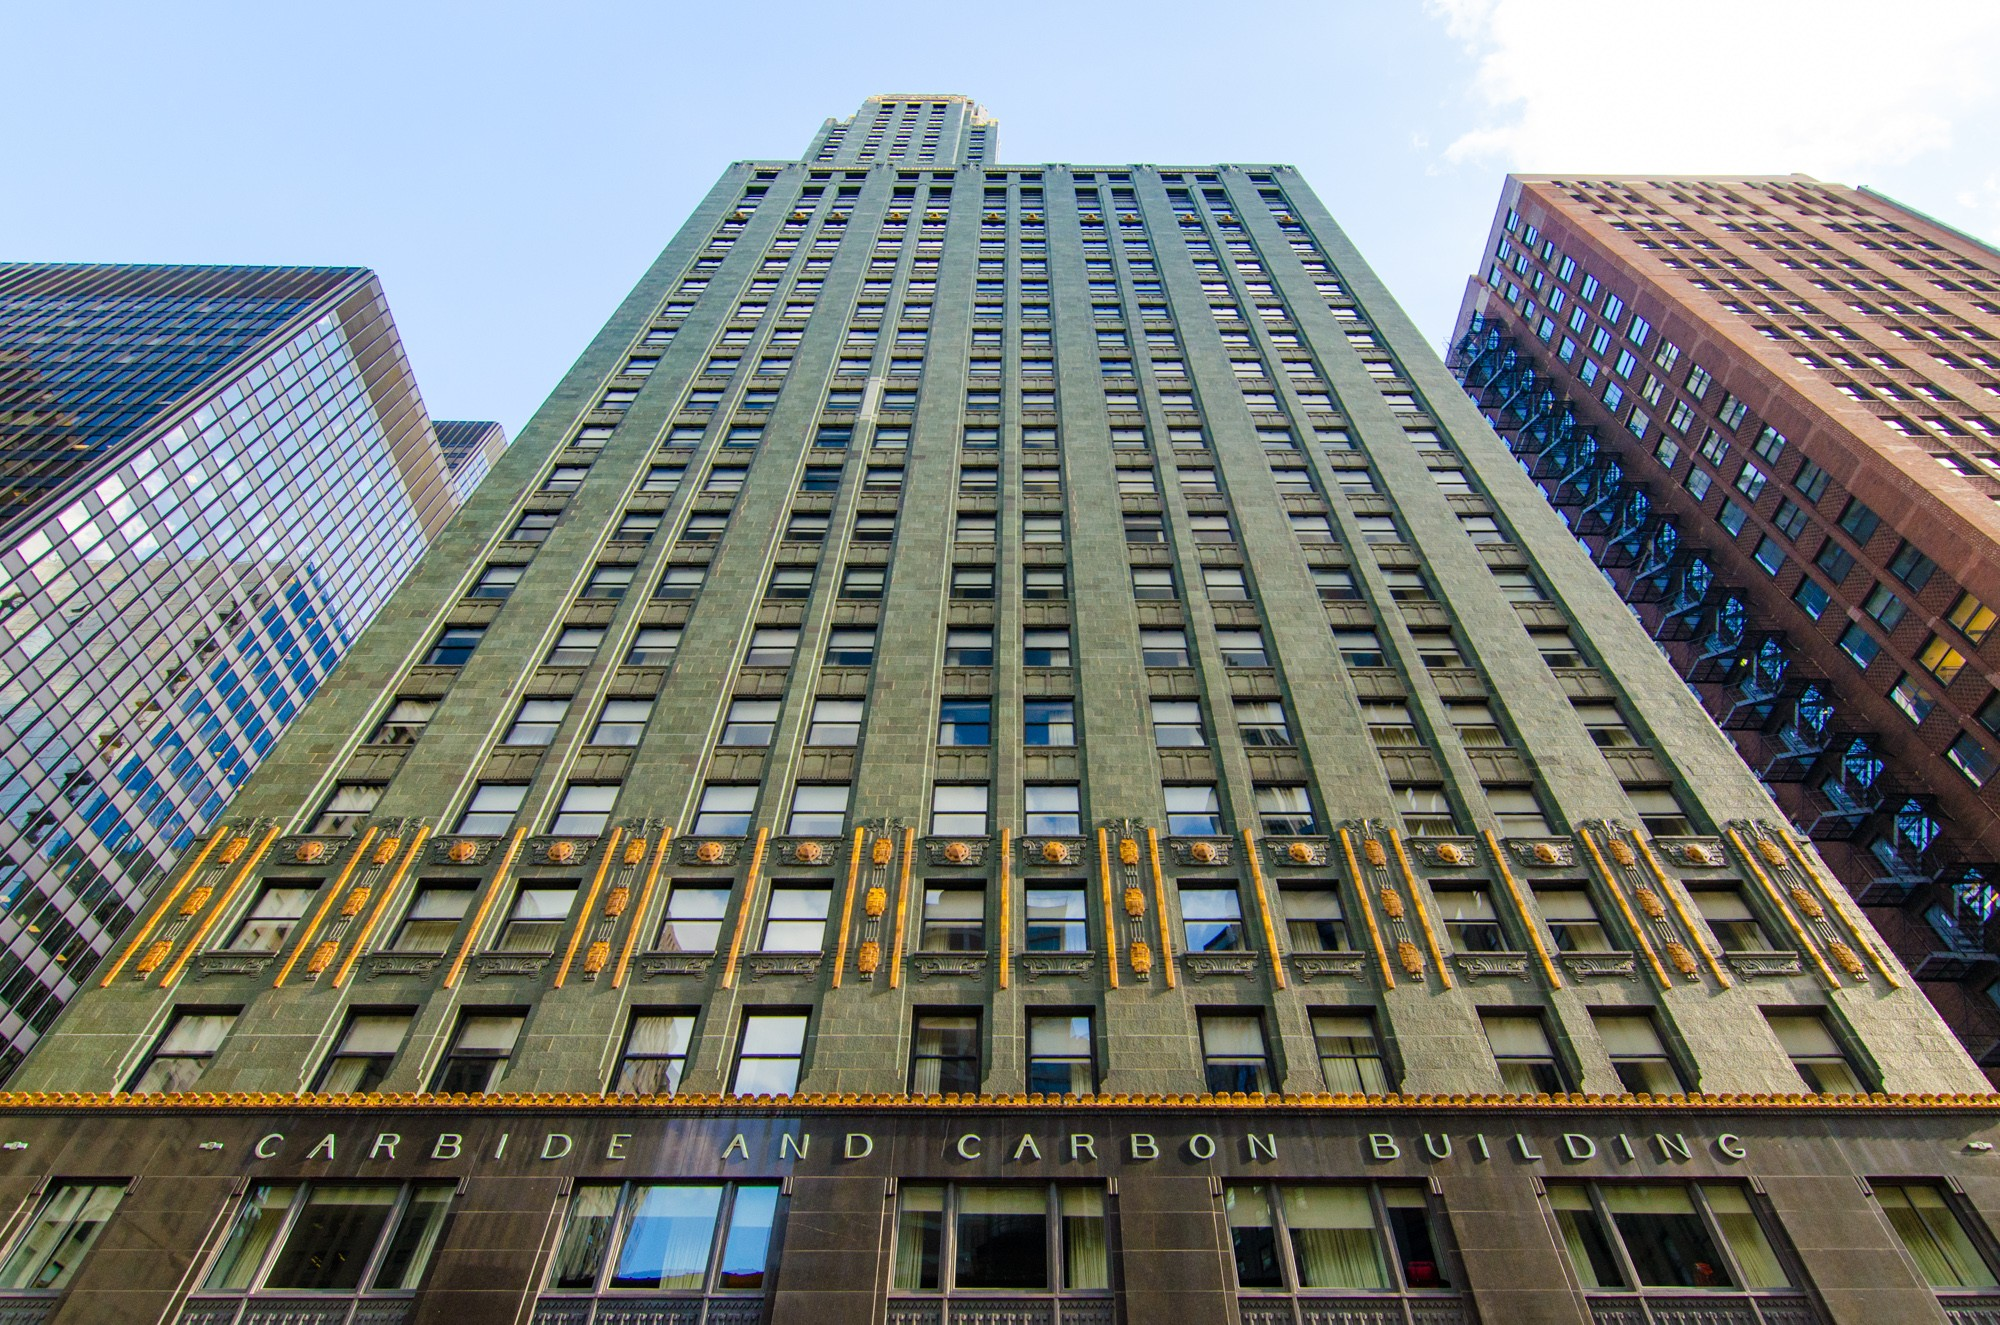 Hard rock hotel chicago carbide and carbon building for Sites hotel